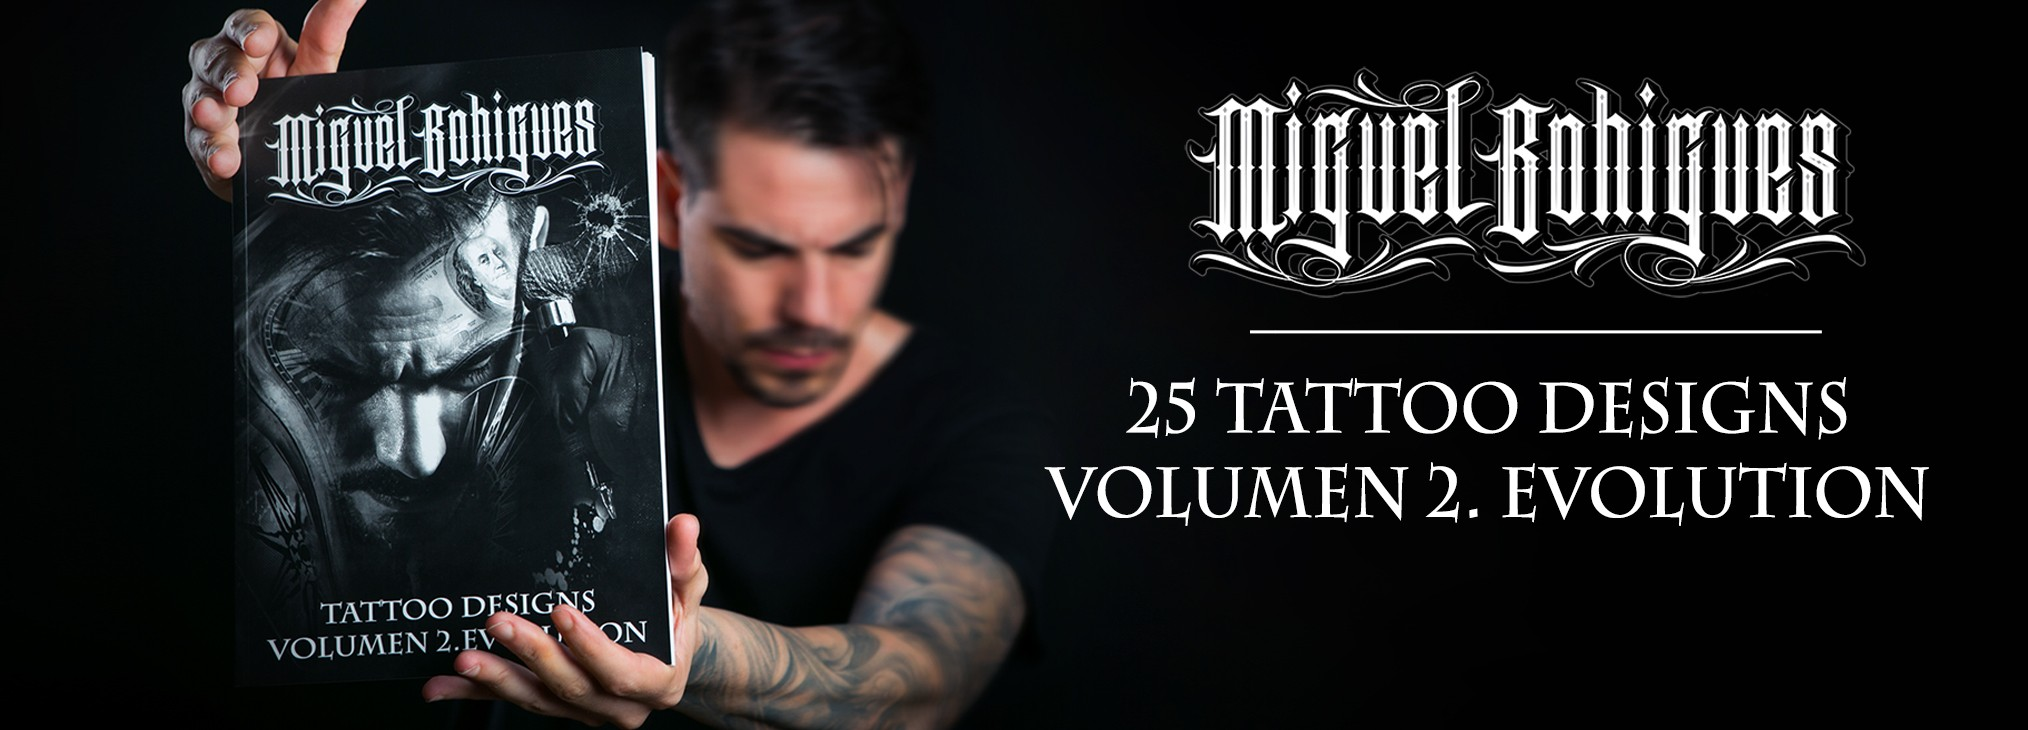 Libro Tattoo Designs Vol2 by Miguel Bohigues